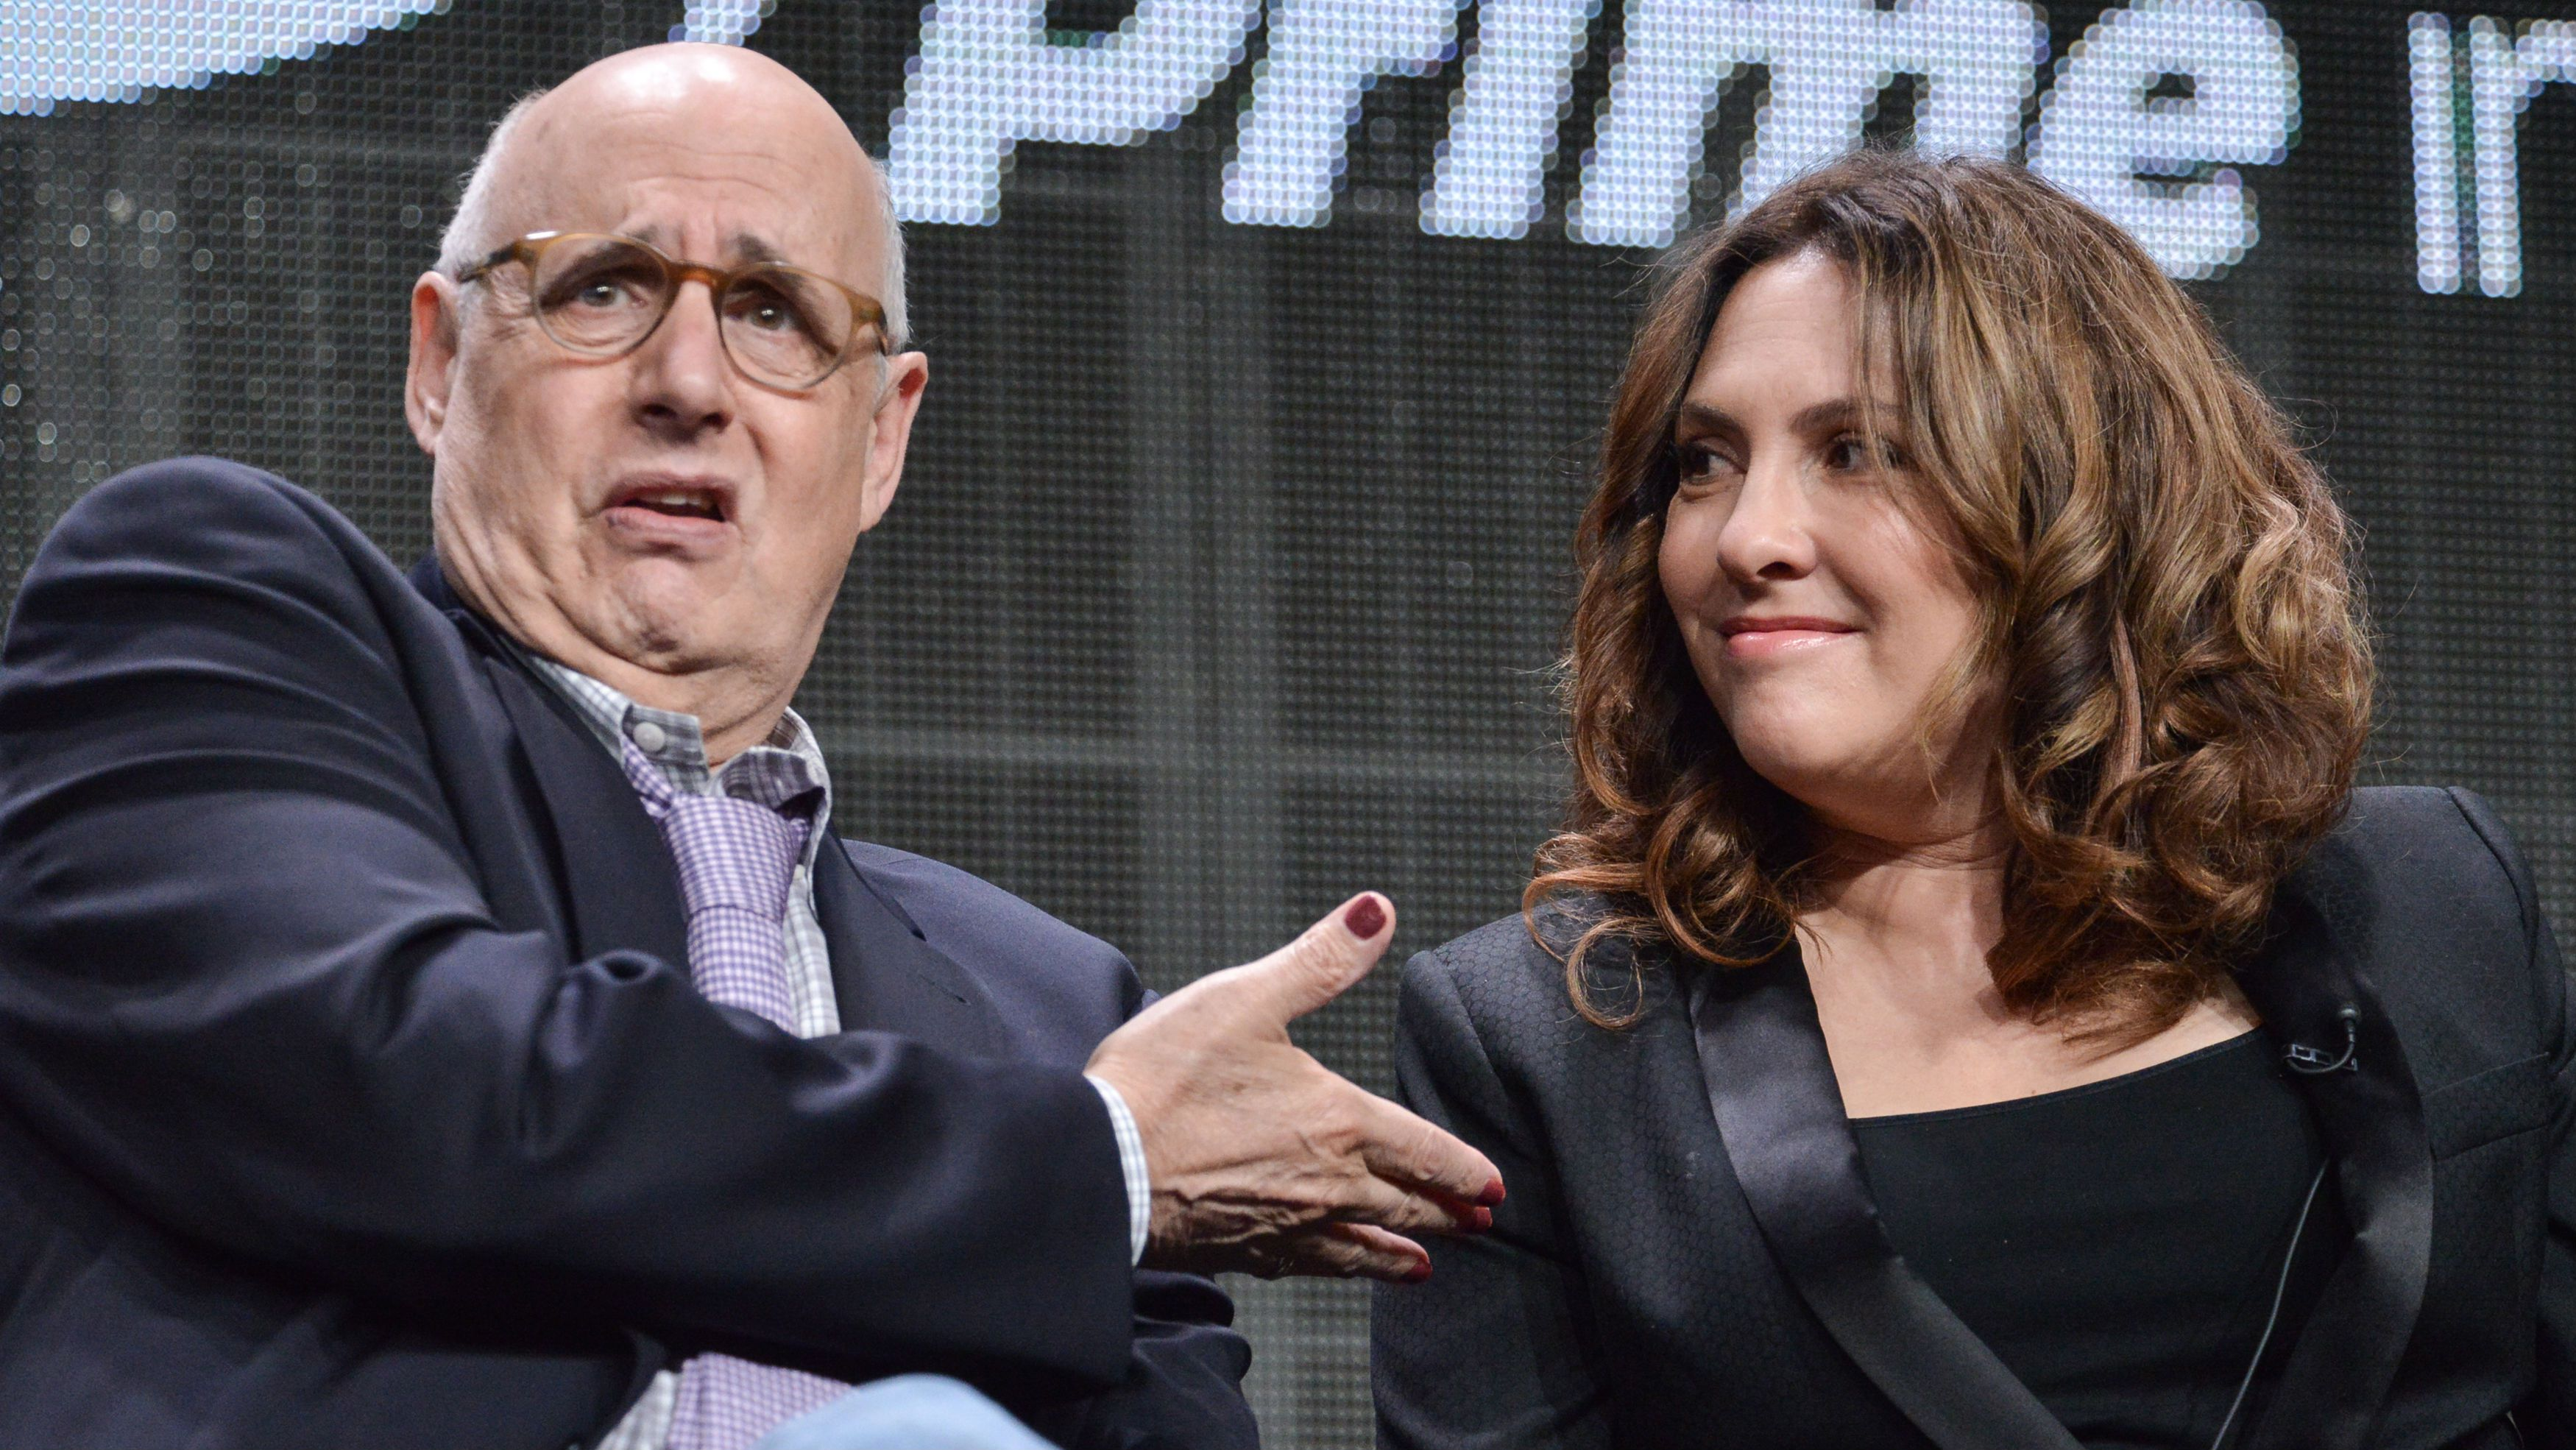 """Jeffrey Tambor, left, and Jill Soloway speak onstage during the """"Transparent"""" panel at the Amazon 2014 Summer TCA on Saturday, July 12, 2014, in Beverly Hills, Calif. (Photo by Richard Shotwell/Invision/AP)"""